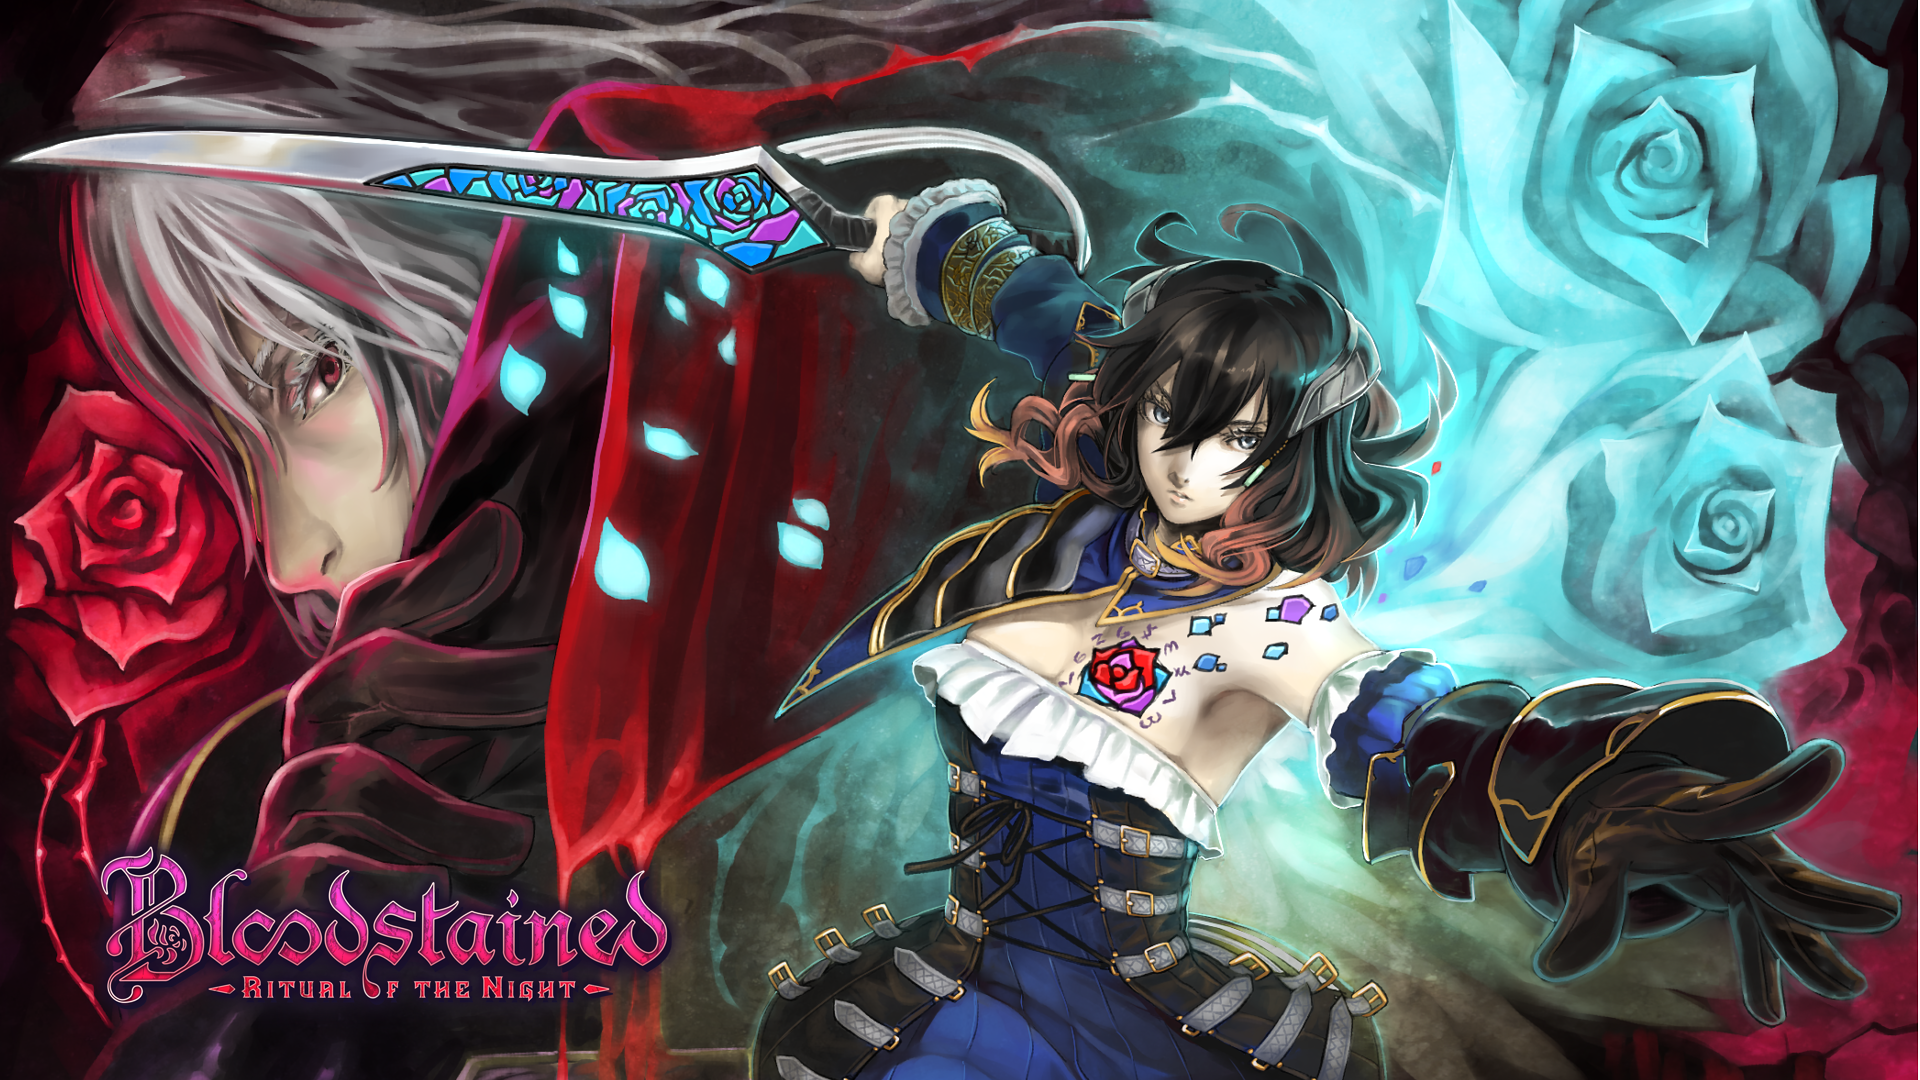 Castlevania - Page 4 Bloodstained-Cover